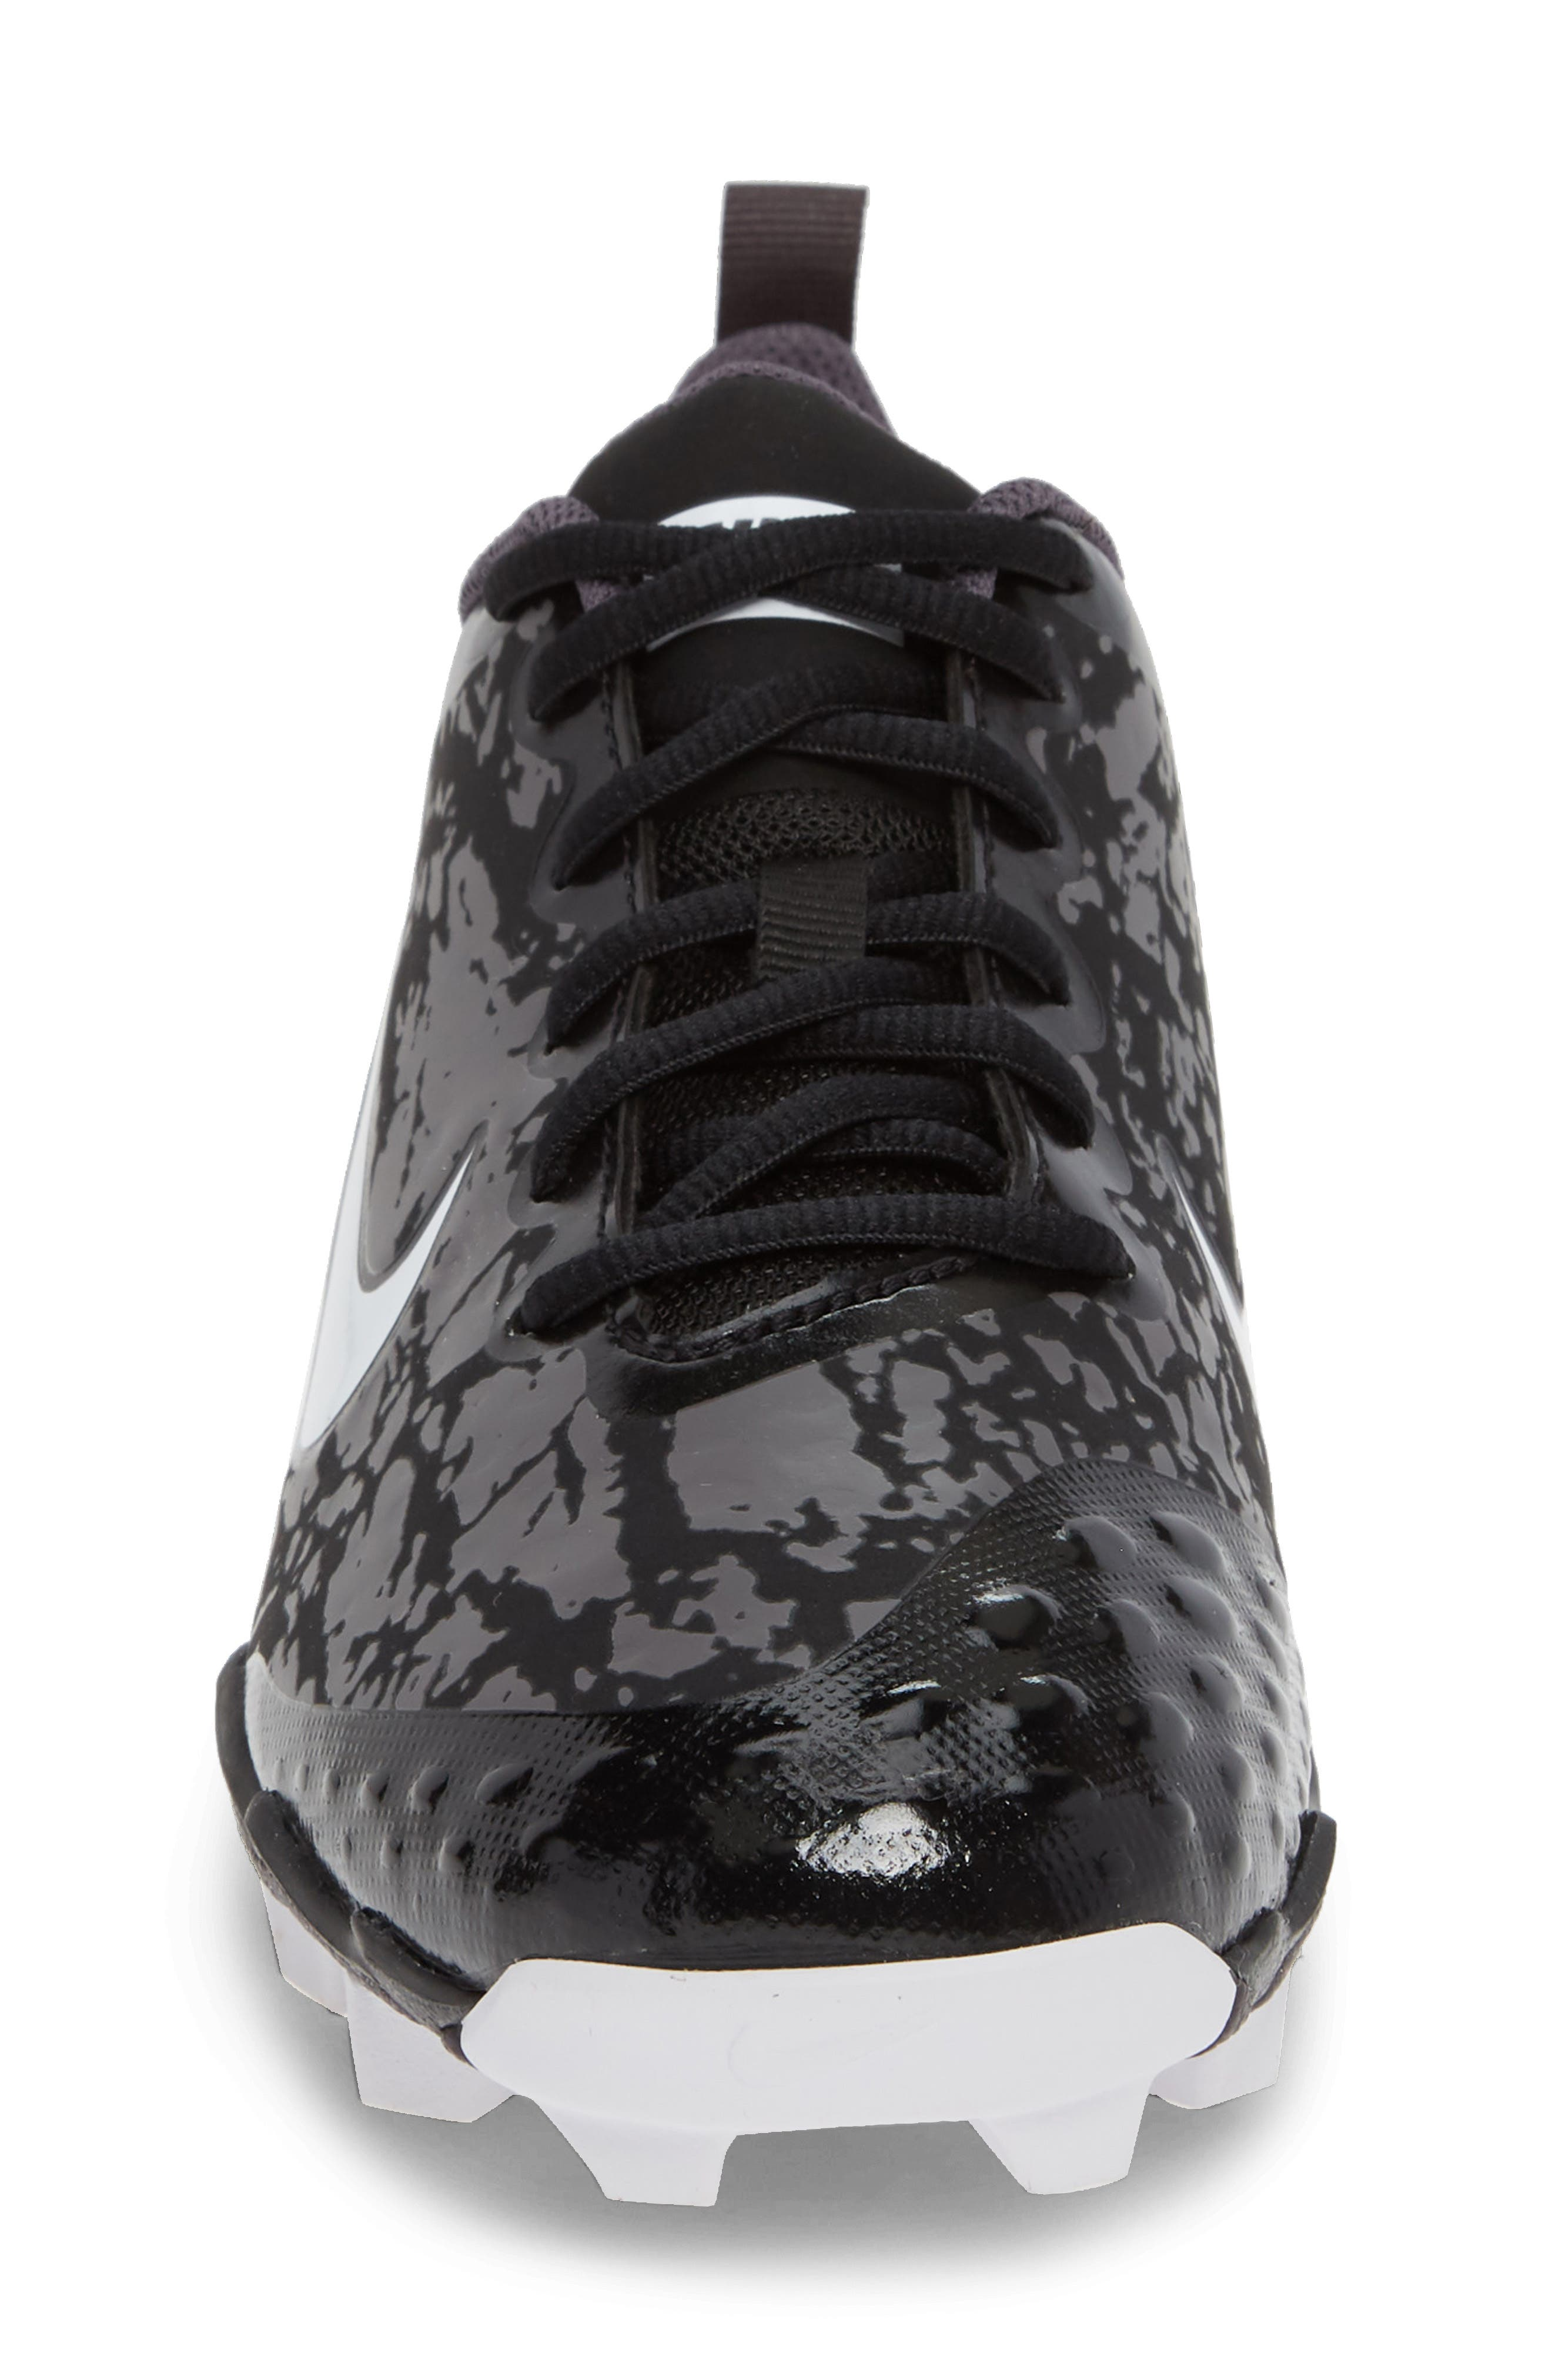 Hyperdiamond 2.5 Keystone Soccer Shoe,                             Alternate thumbnail 4, color,                             BLACK/ WHITE/ THUNDER GREY